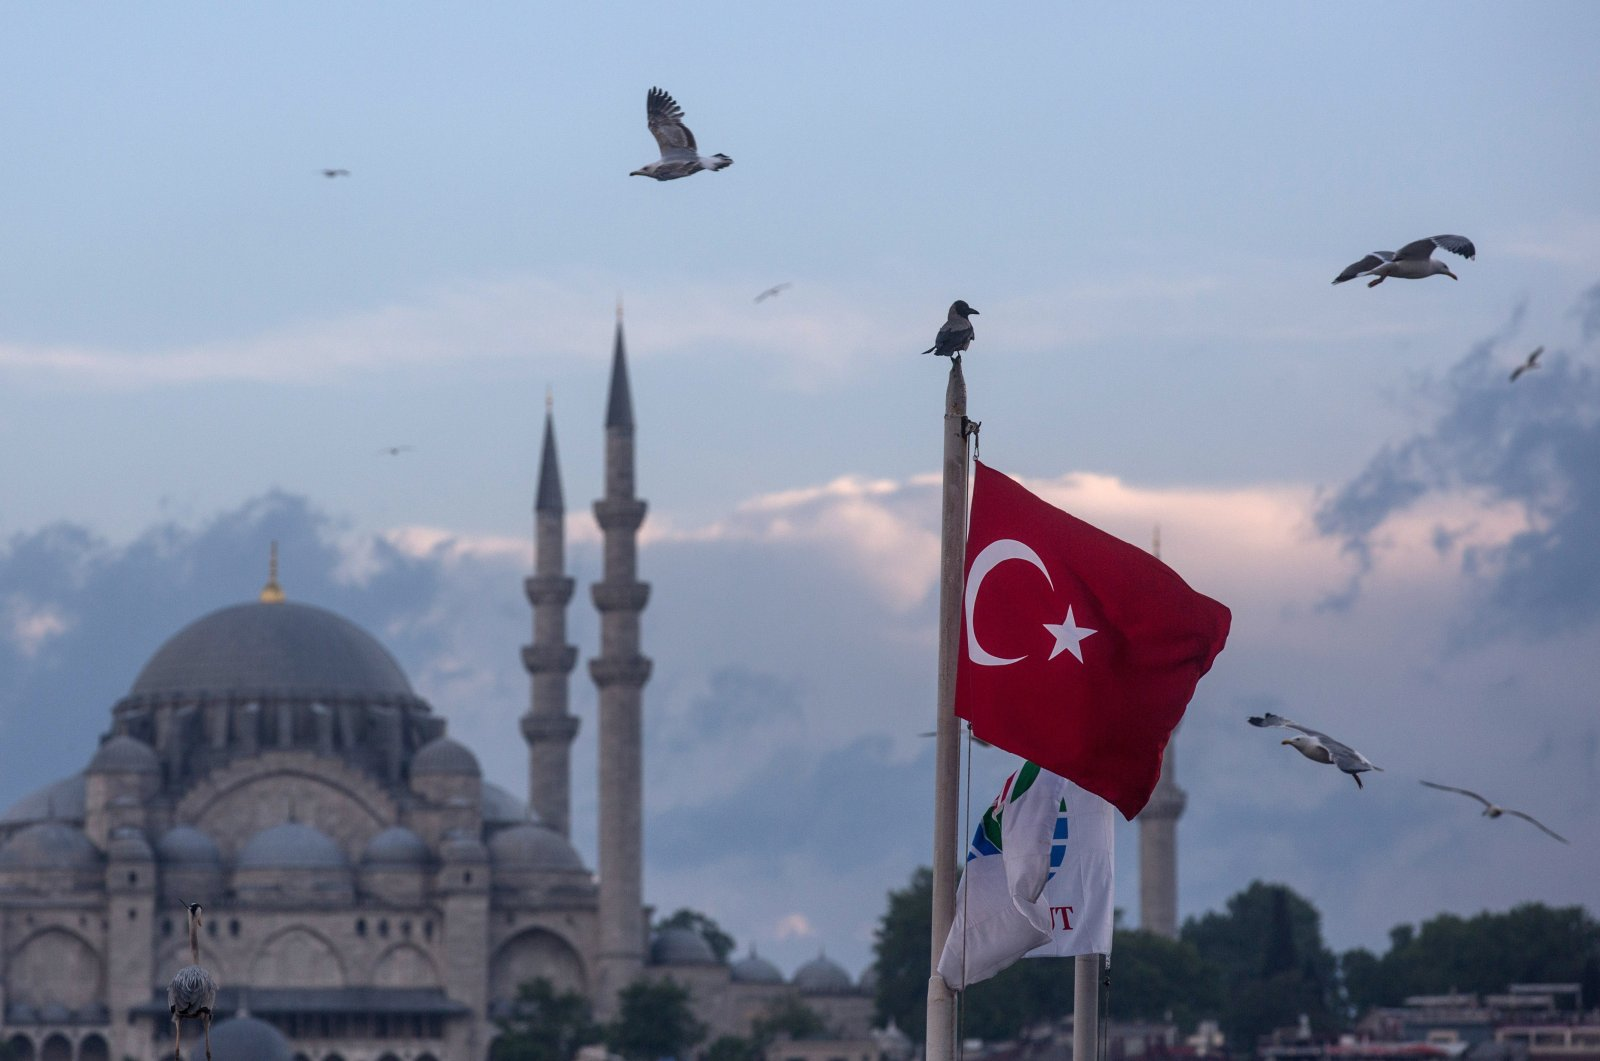 Seagulls fly over a Turkish flag in Istanbul, Turkey, May 3, 2016. (Getty Images)